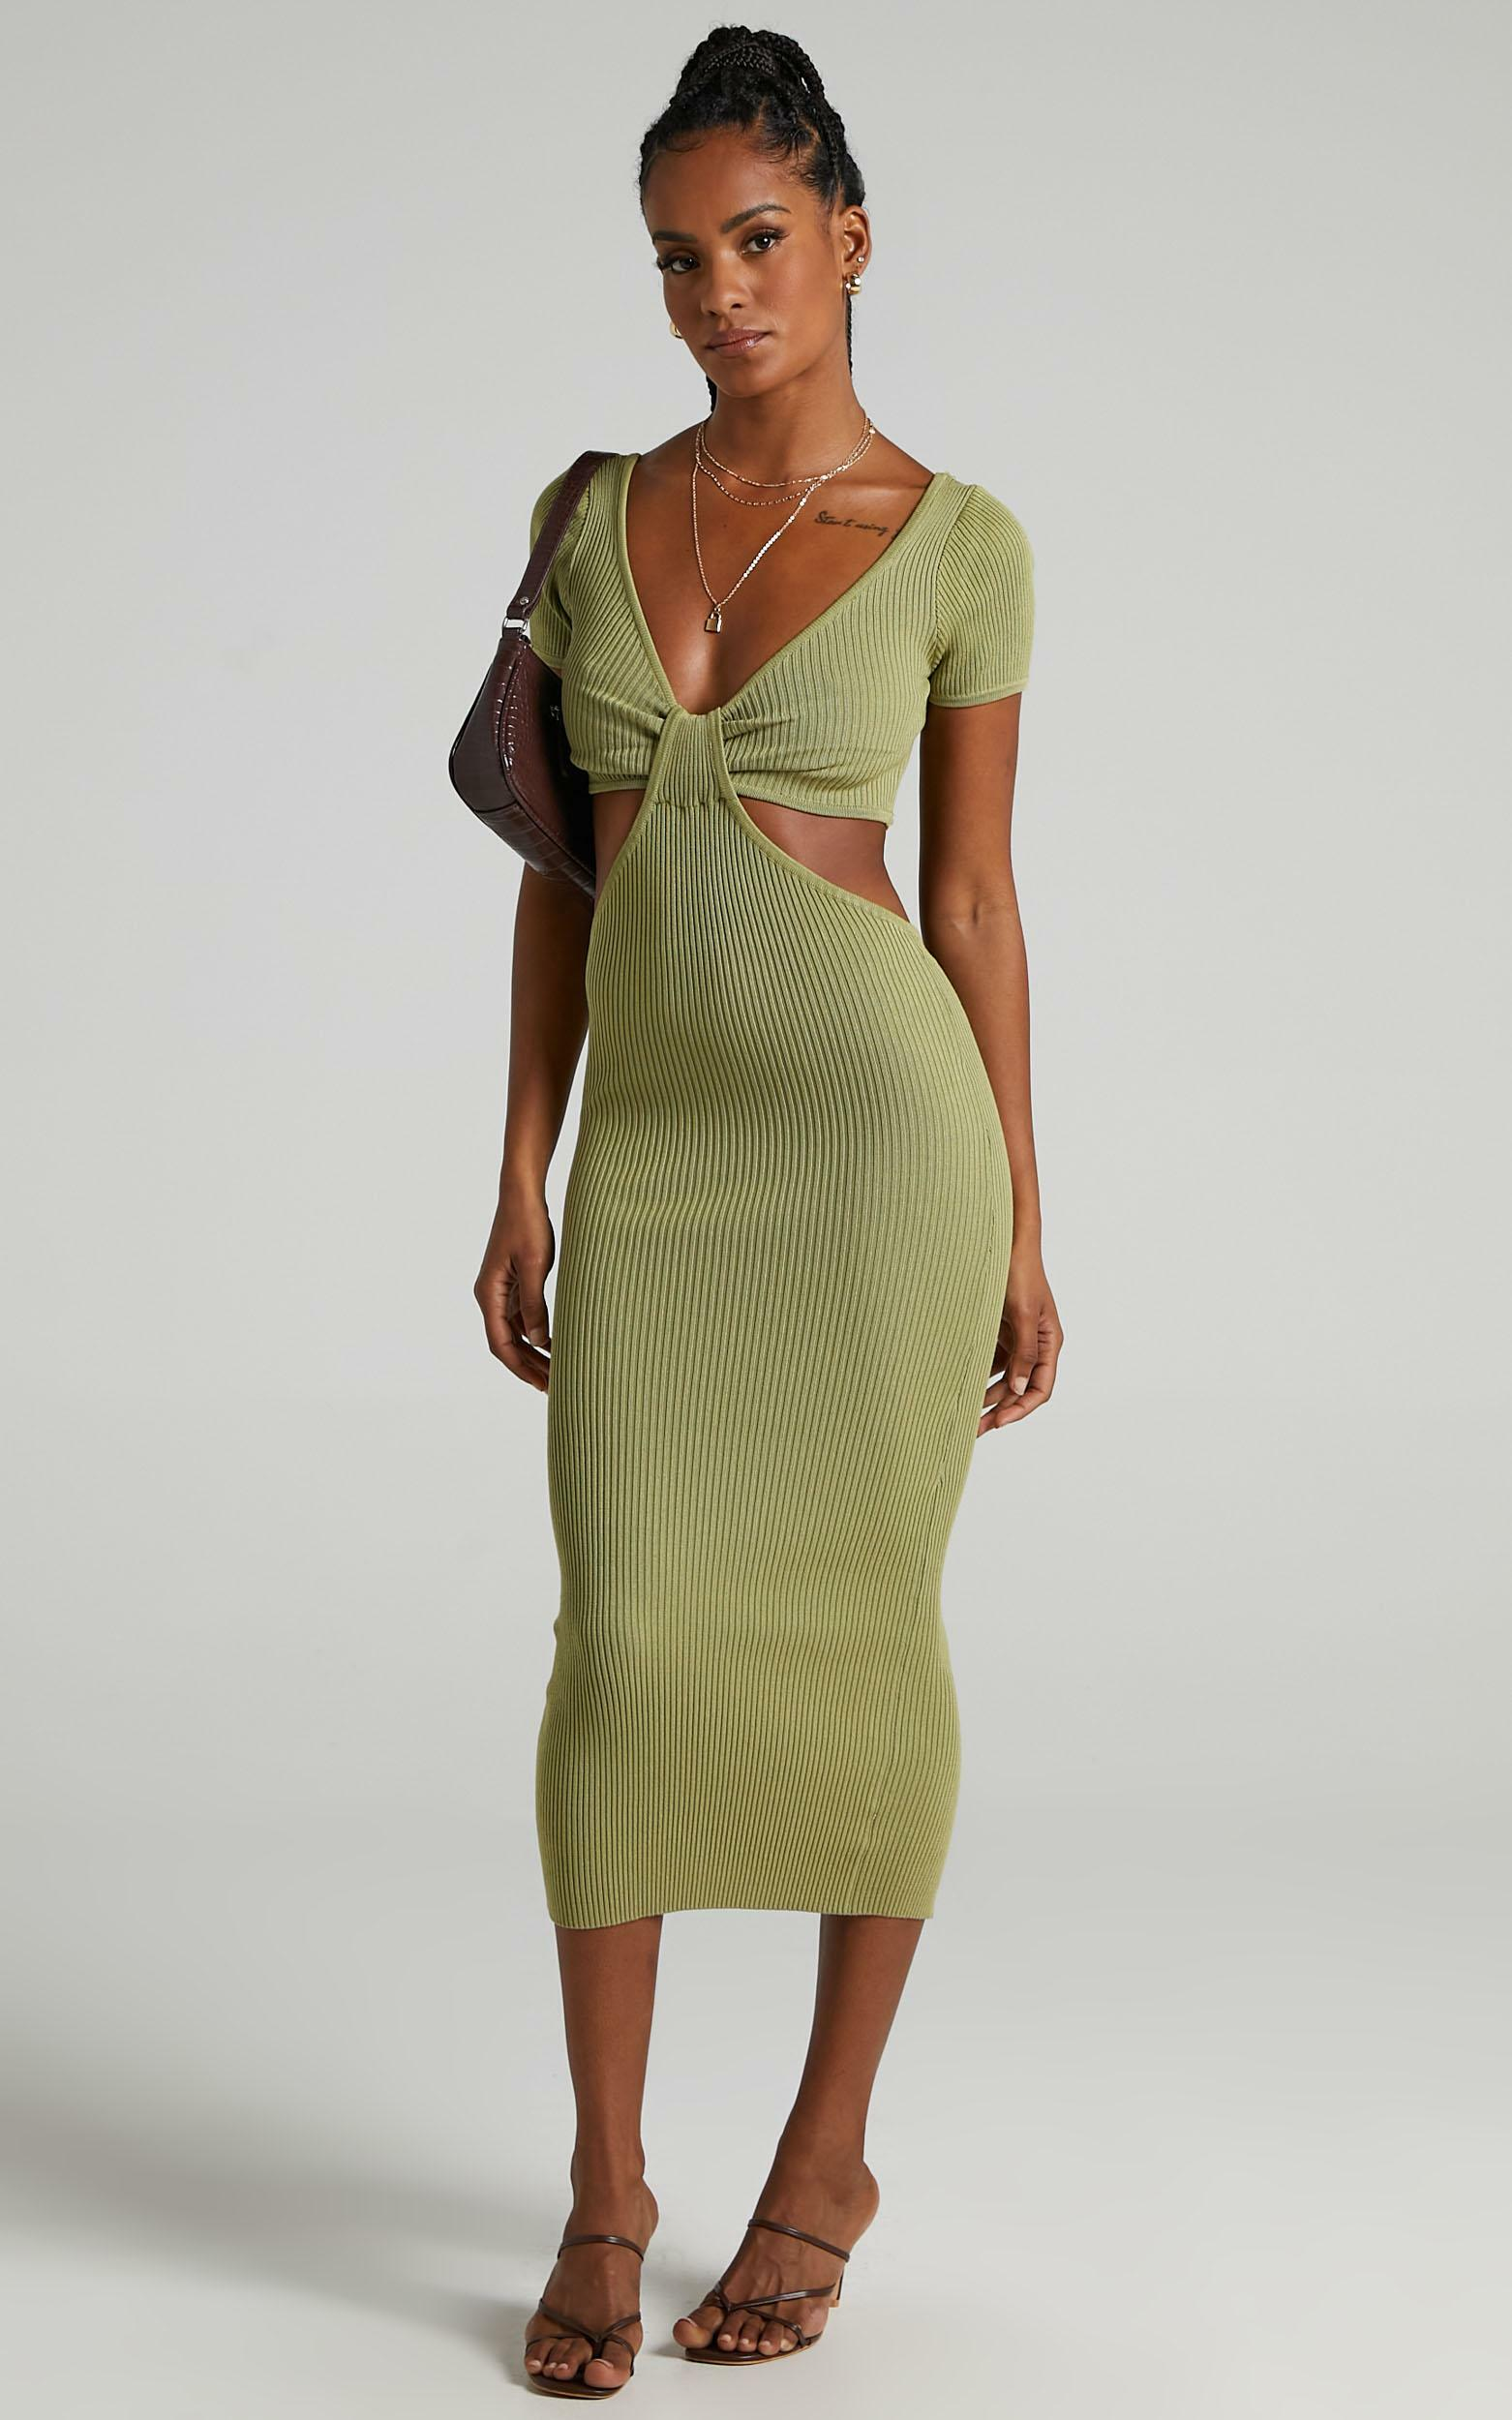 Akayla Dress in Green - 08, GRN2, hi-res image number null